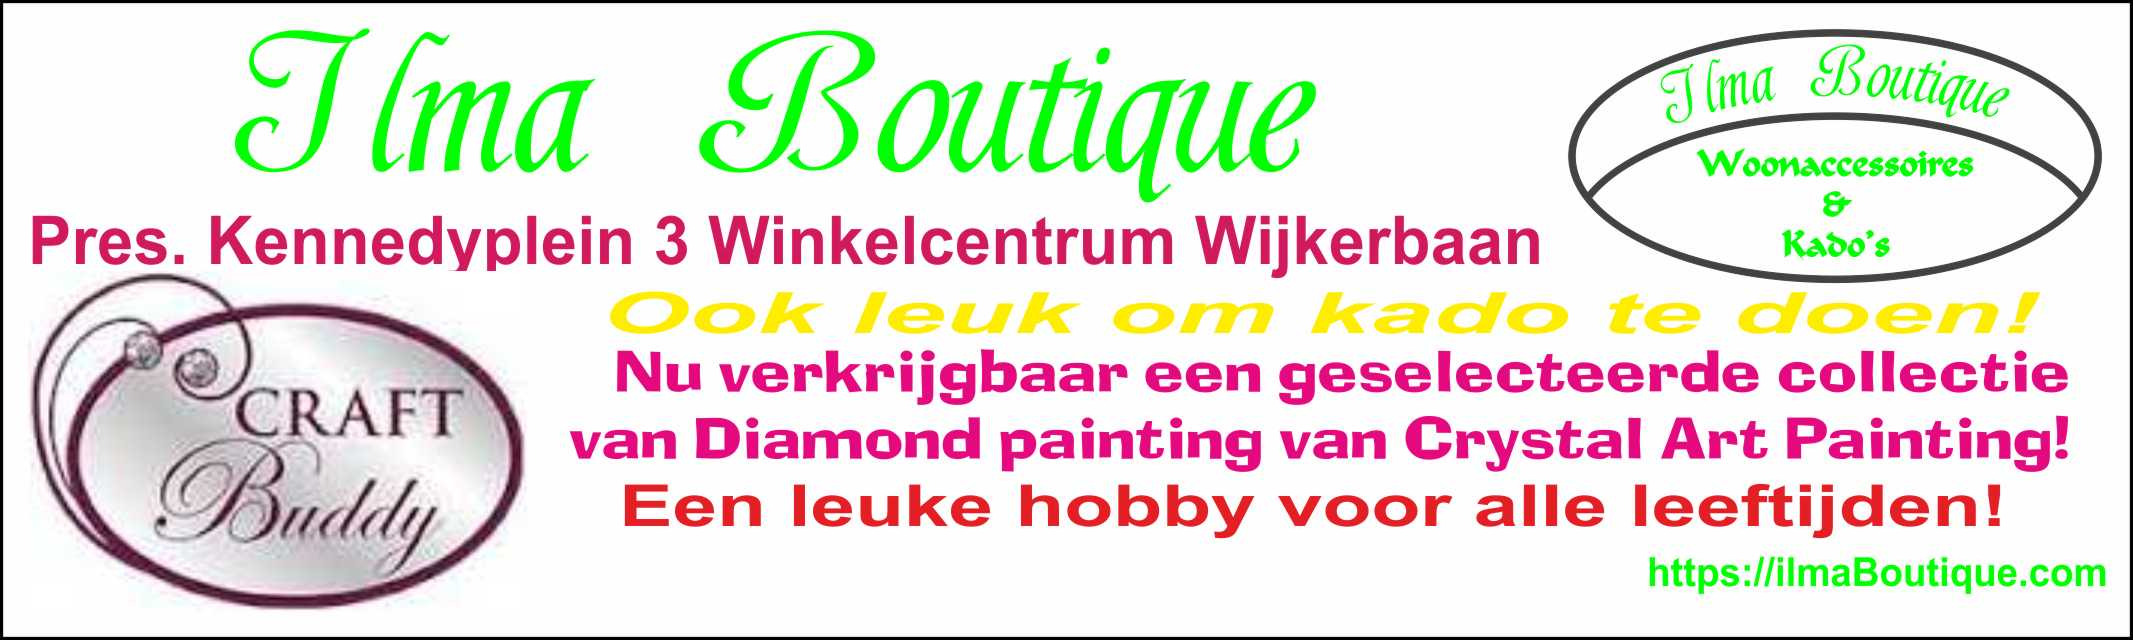 Diamond painting van Crystal Art Painting!, Verkrijbaar via